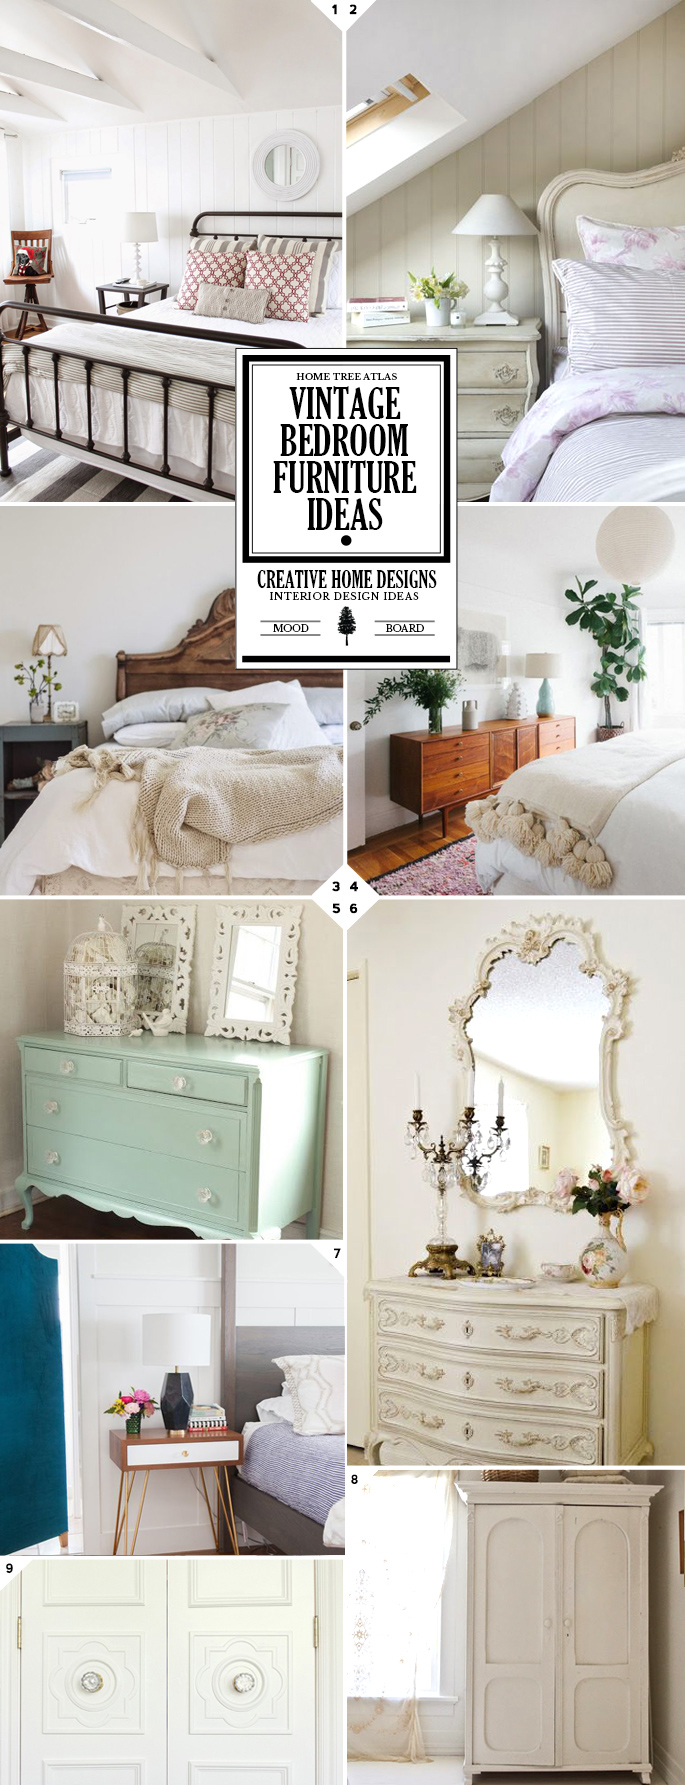 Styling Your Space: Vintage Bedroom Furniture Ideas